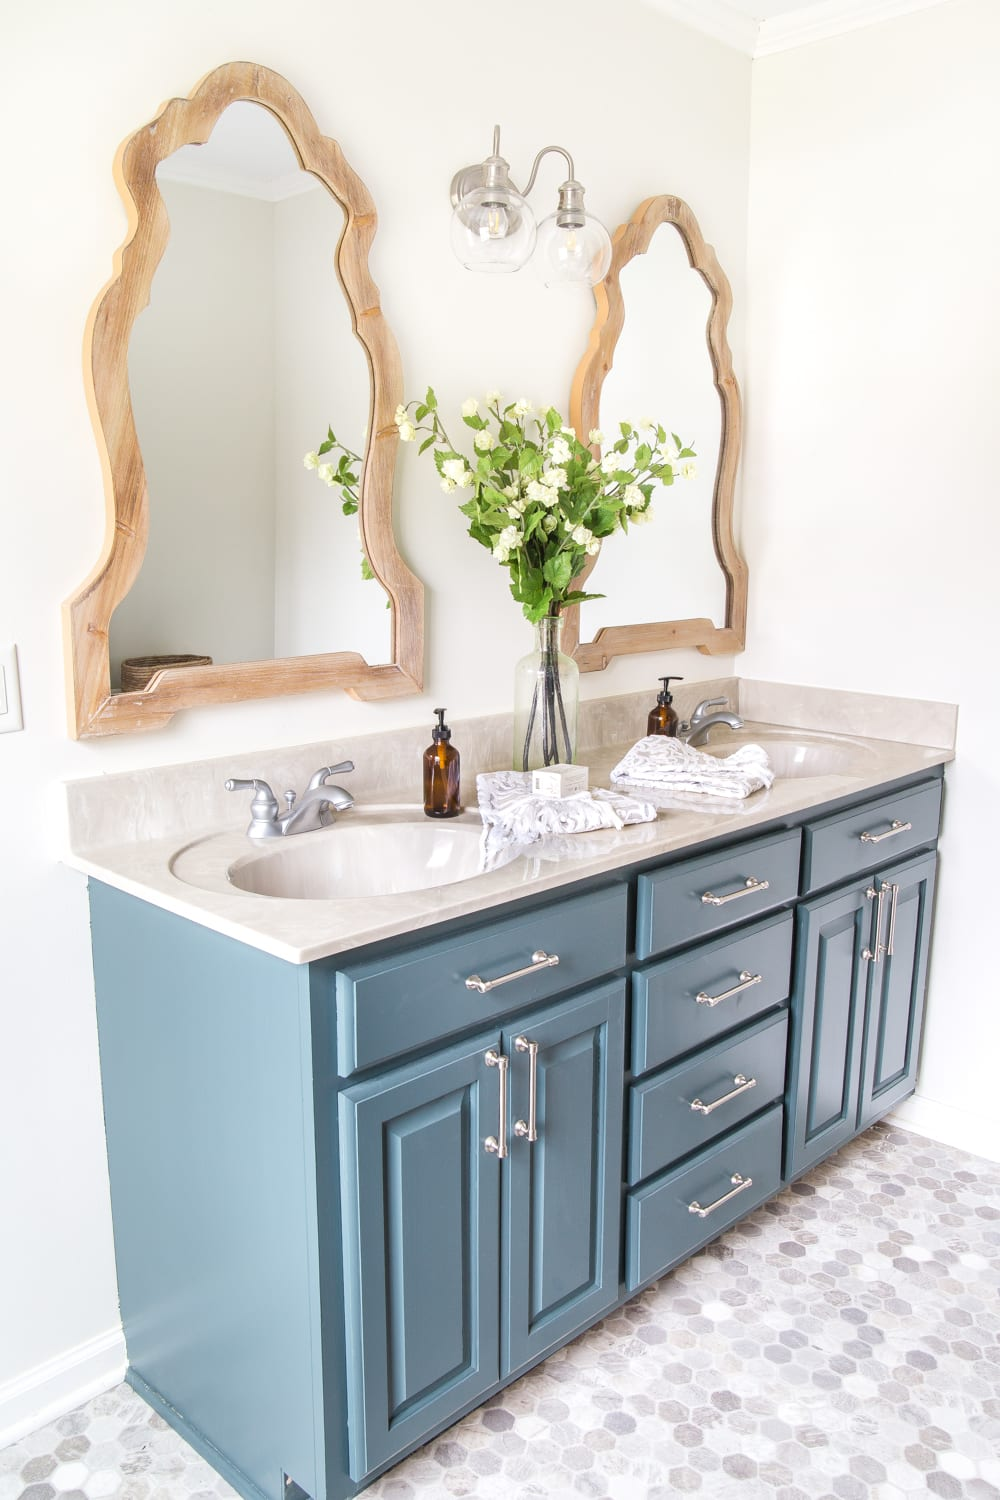 Bathroom Vanity Organization | The must-do steps to thoroughly organize your bathroom drawers and cabinets and the best tools to keep them looking tidy. #bathroomorganization #bathroomdrawer #bathroomcabinet #bathroomvanityorganization #bathroomorganizing